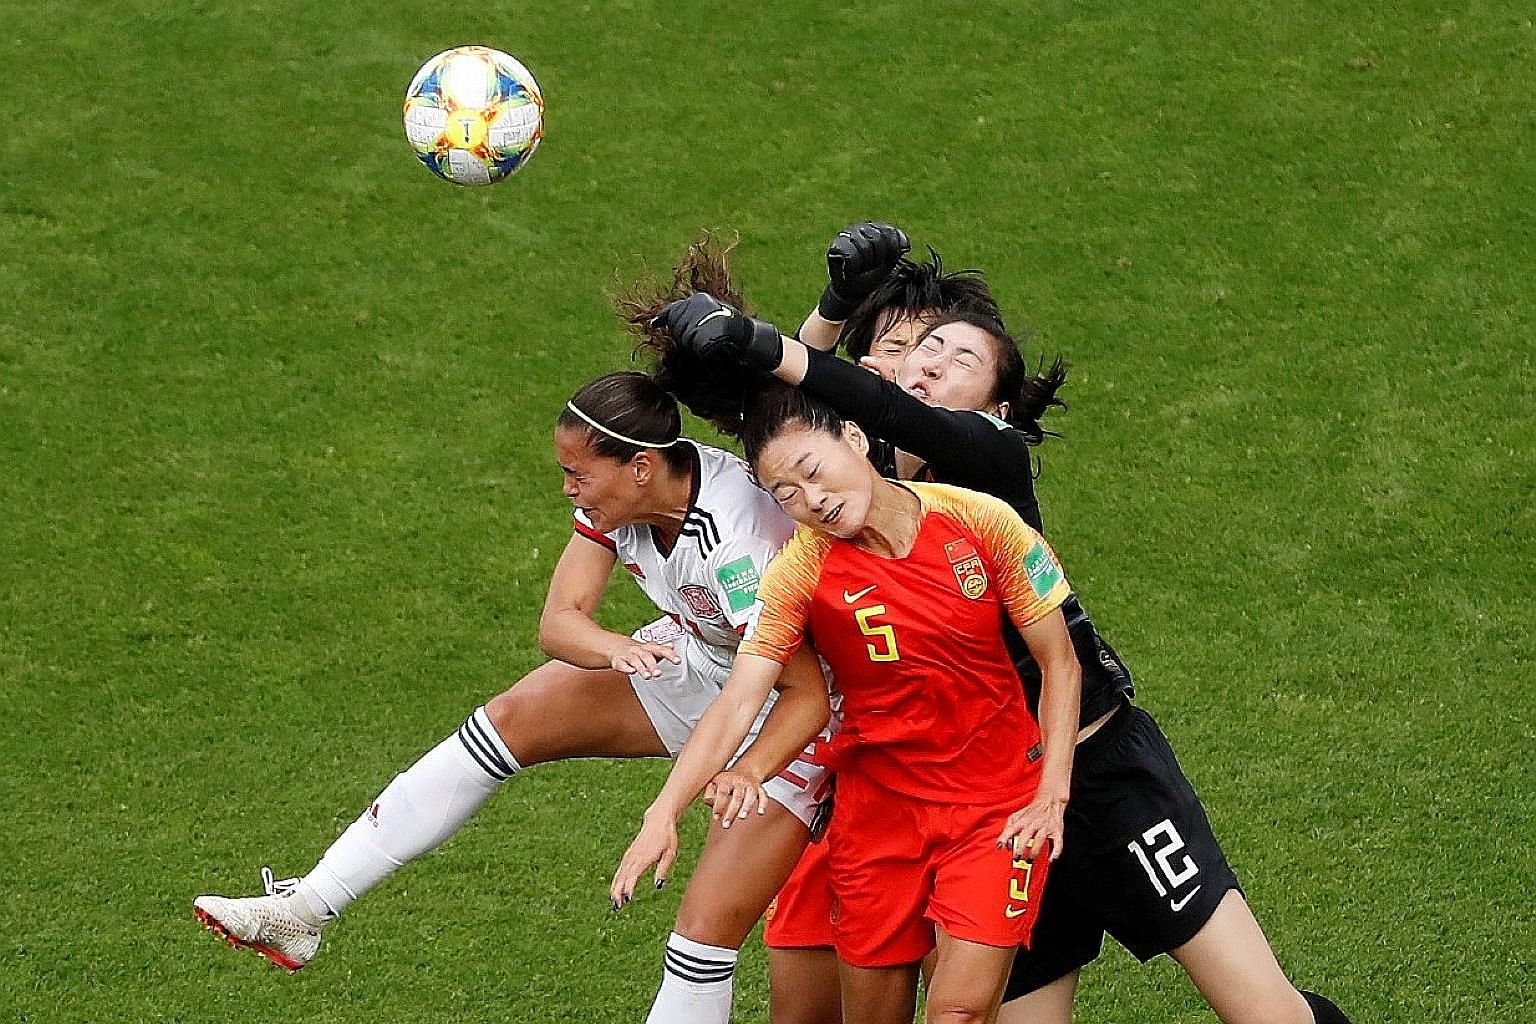 China defender Wu Haiyan and goalkeeper Peng Shimeng trying to block out the threat of Spain forward Andrea Falcon during the 0-0 World Cup draw on Monday. Both teams are through to the knockout stage of the competition despite the stalemate.